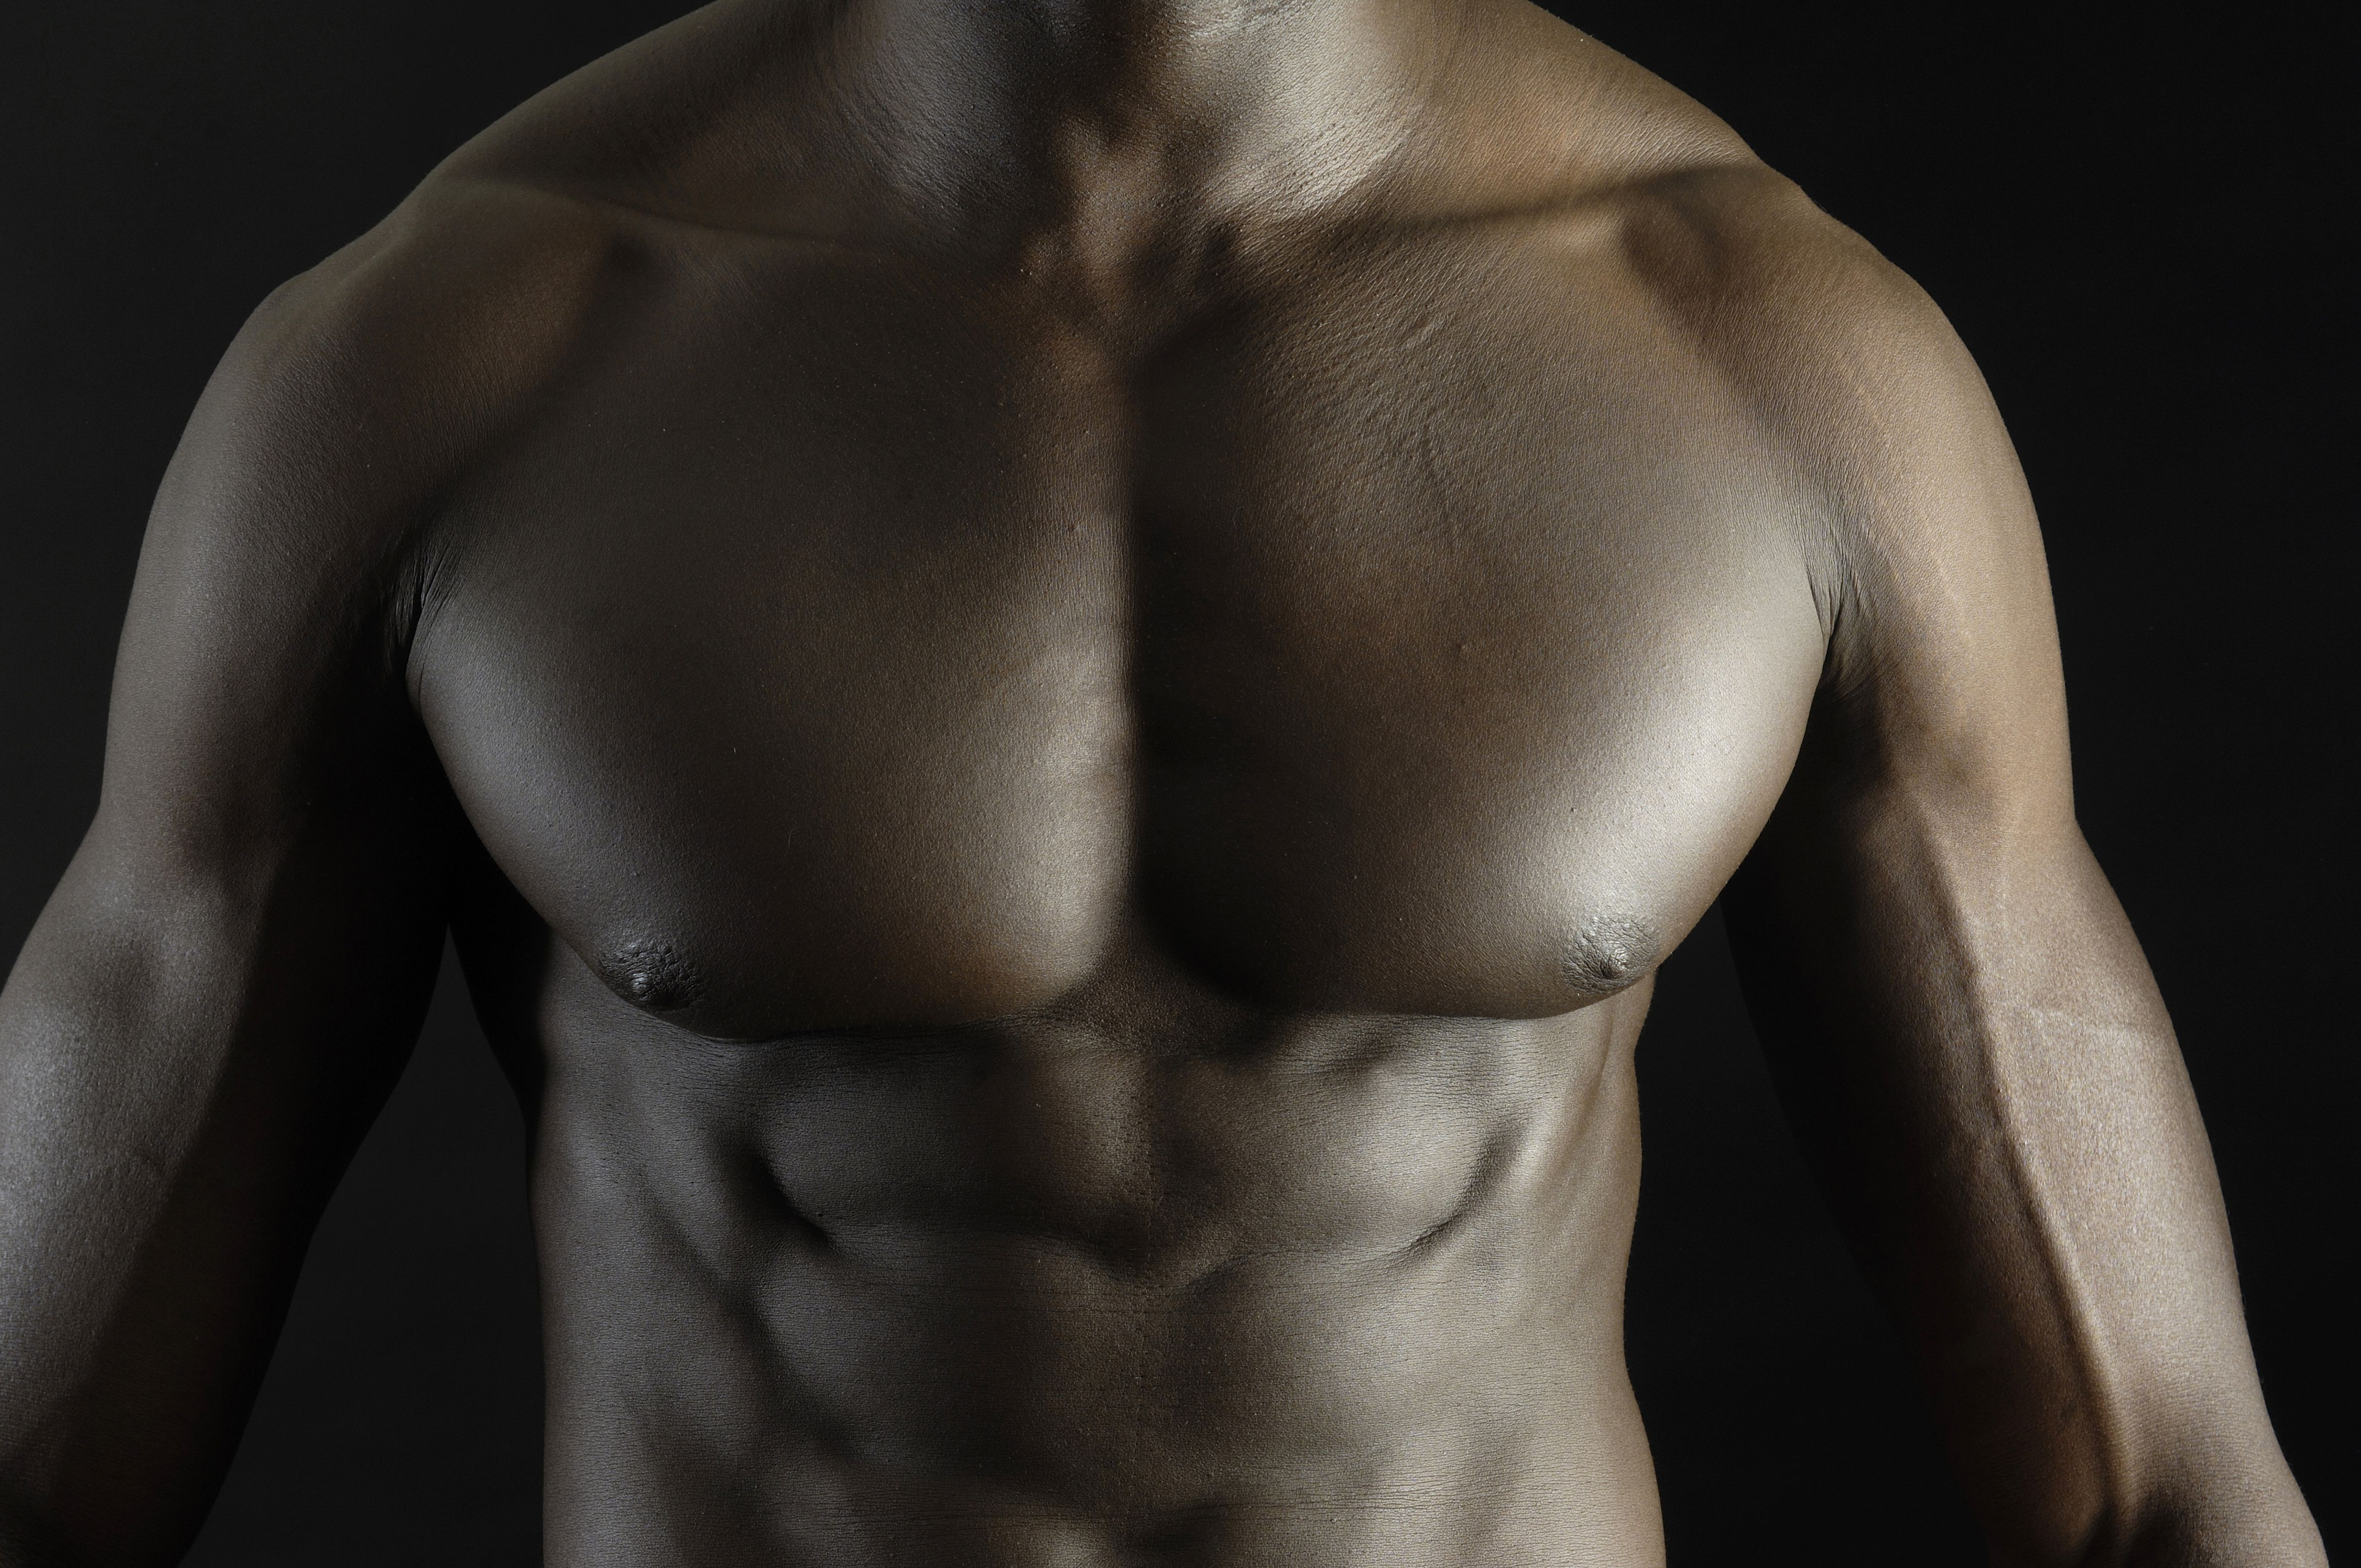 Strong pec and ab muscles.